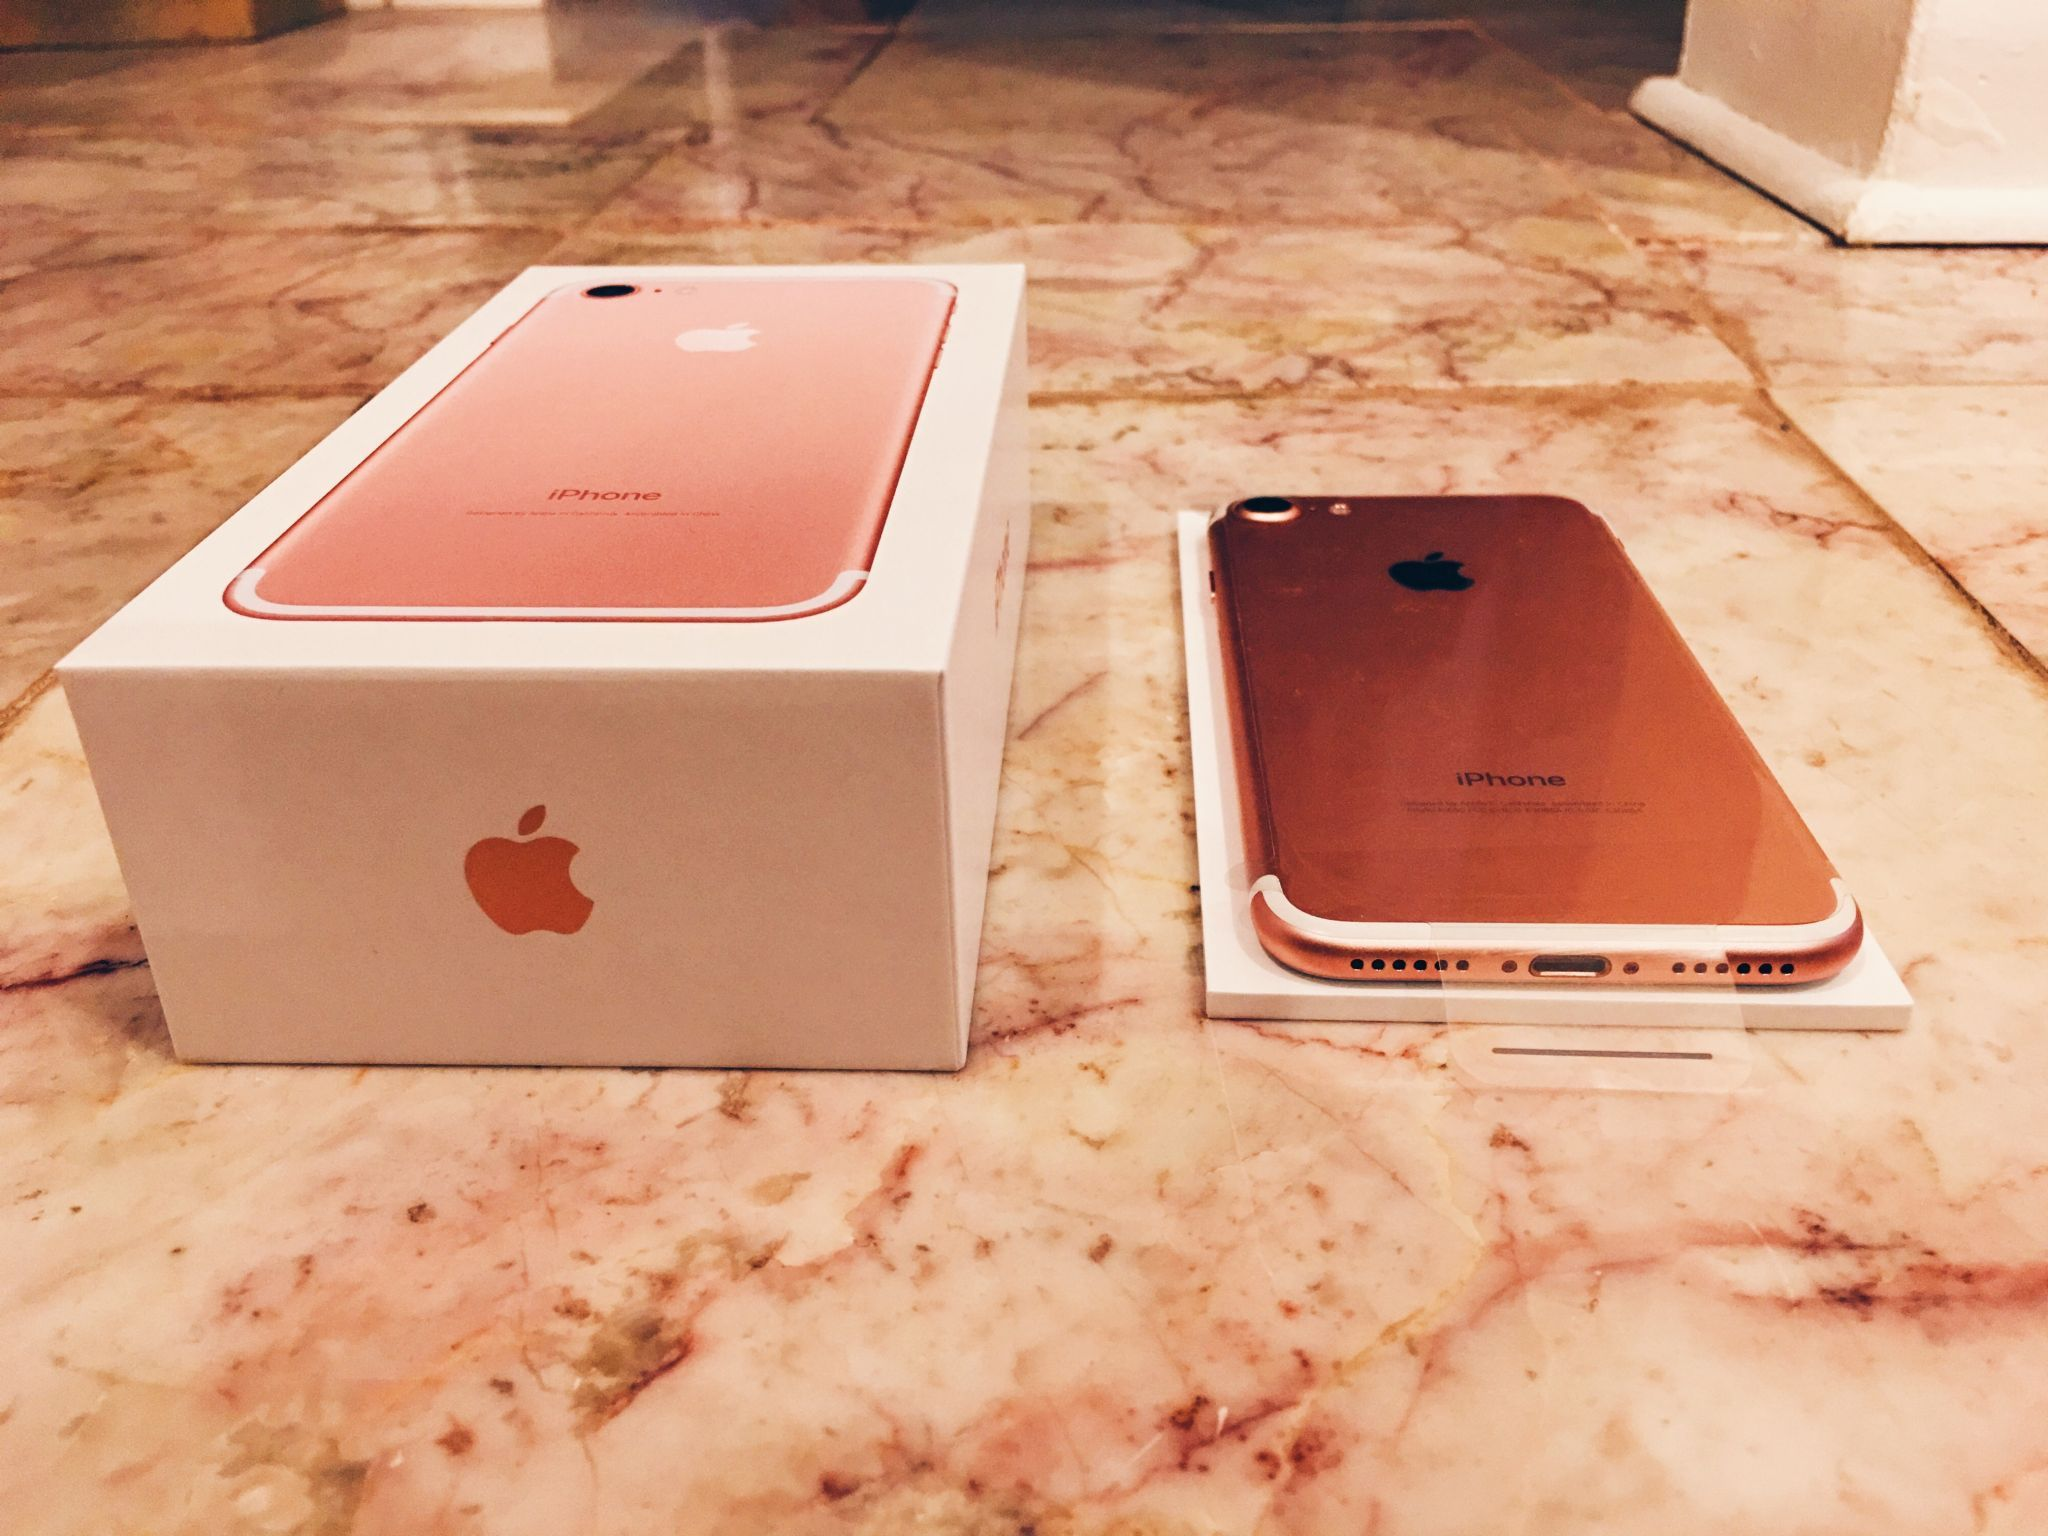 Iphone 7 Rose Gold Unboxing Iphone 7 Rose Gold Iphone Iphone 7